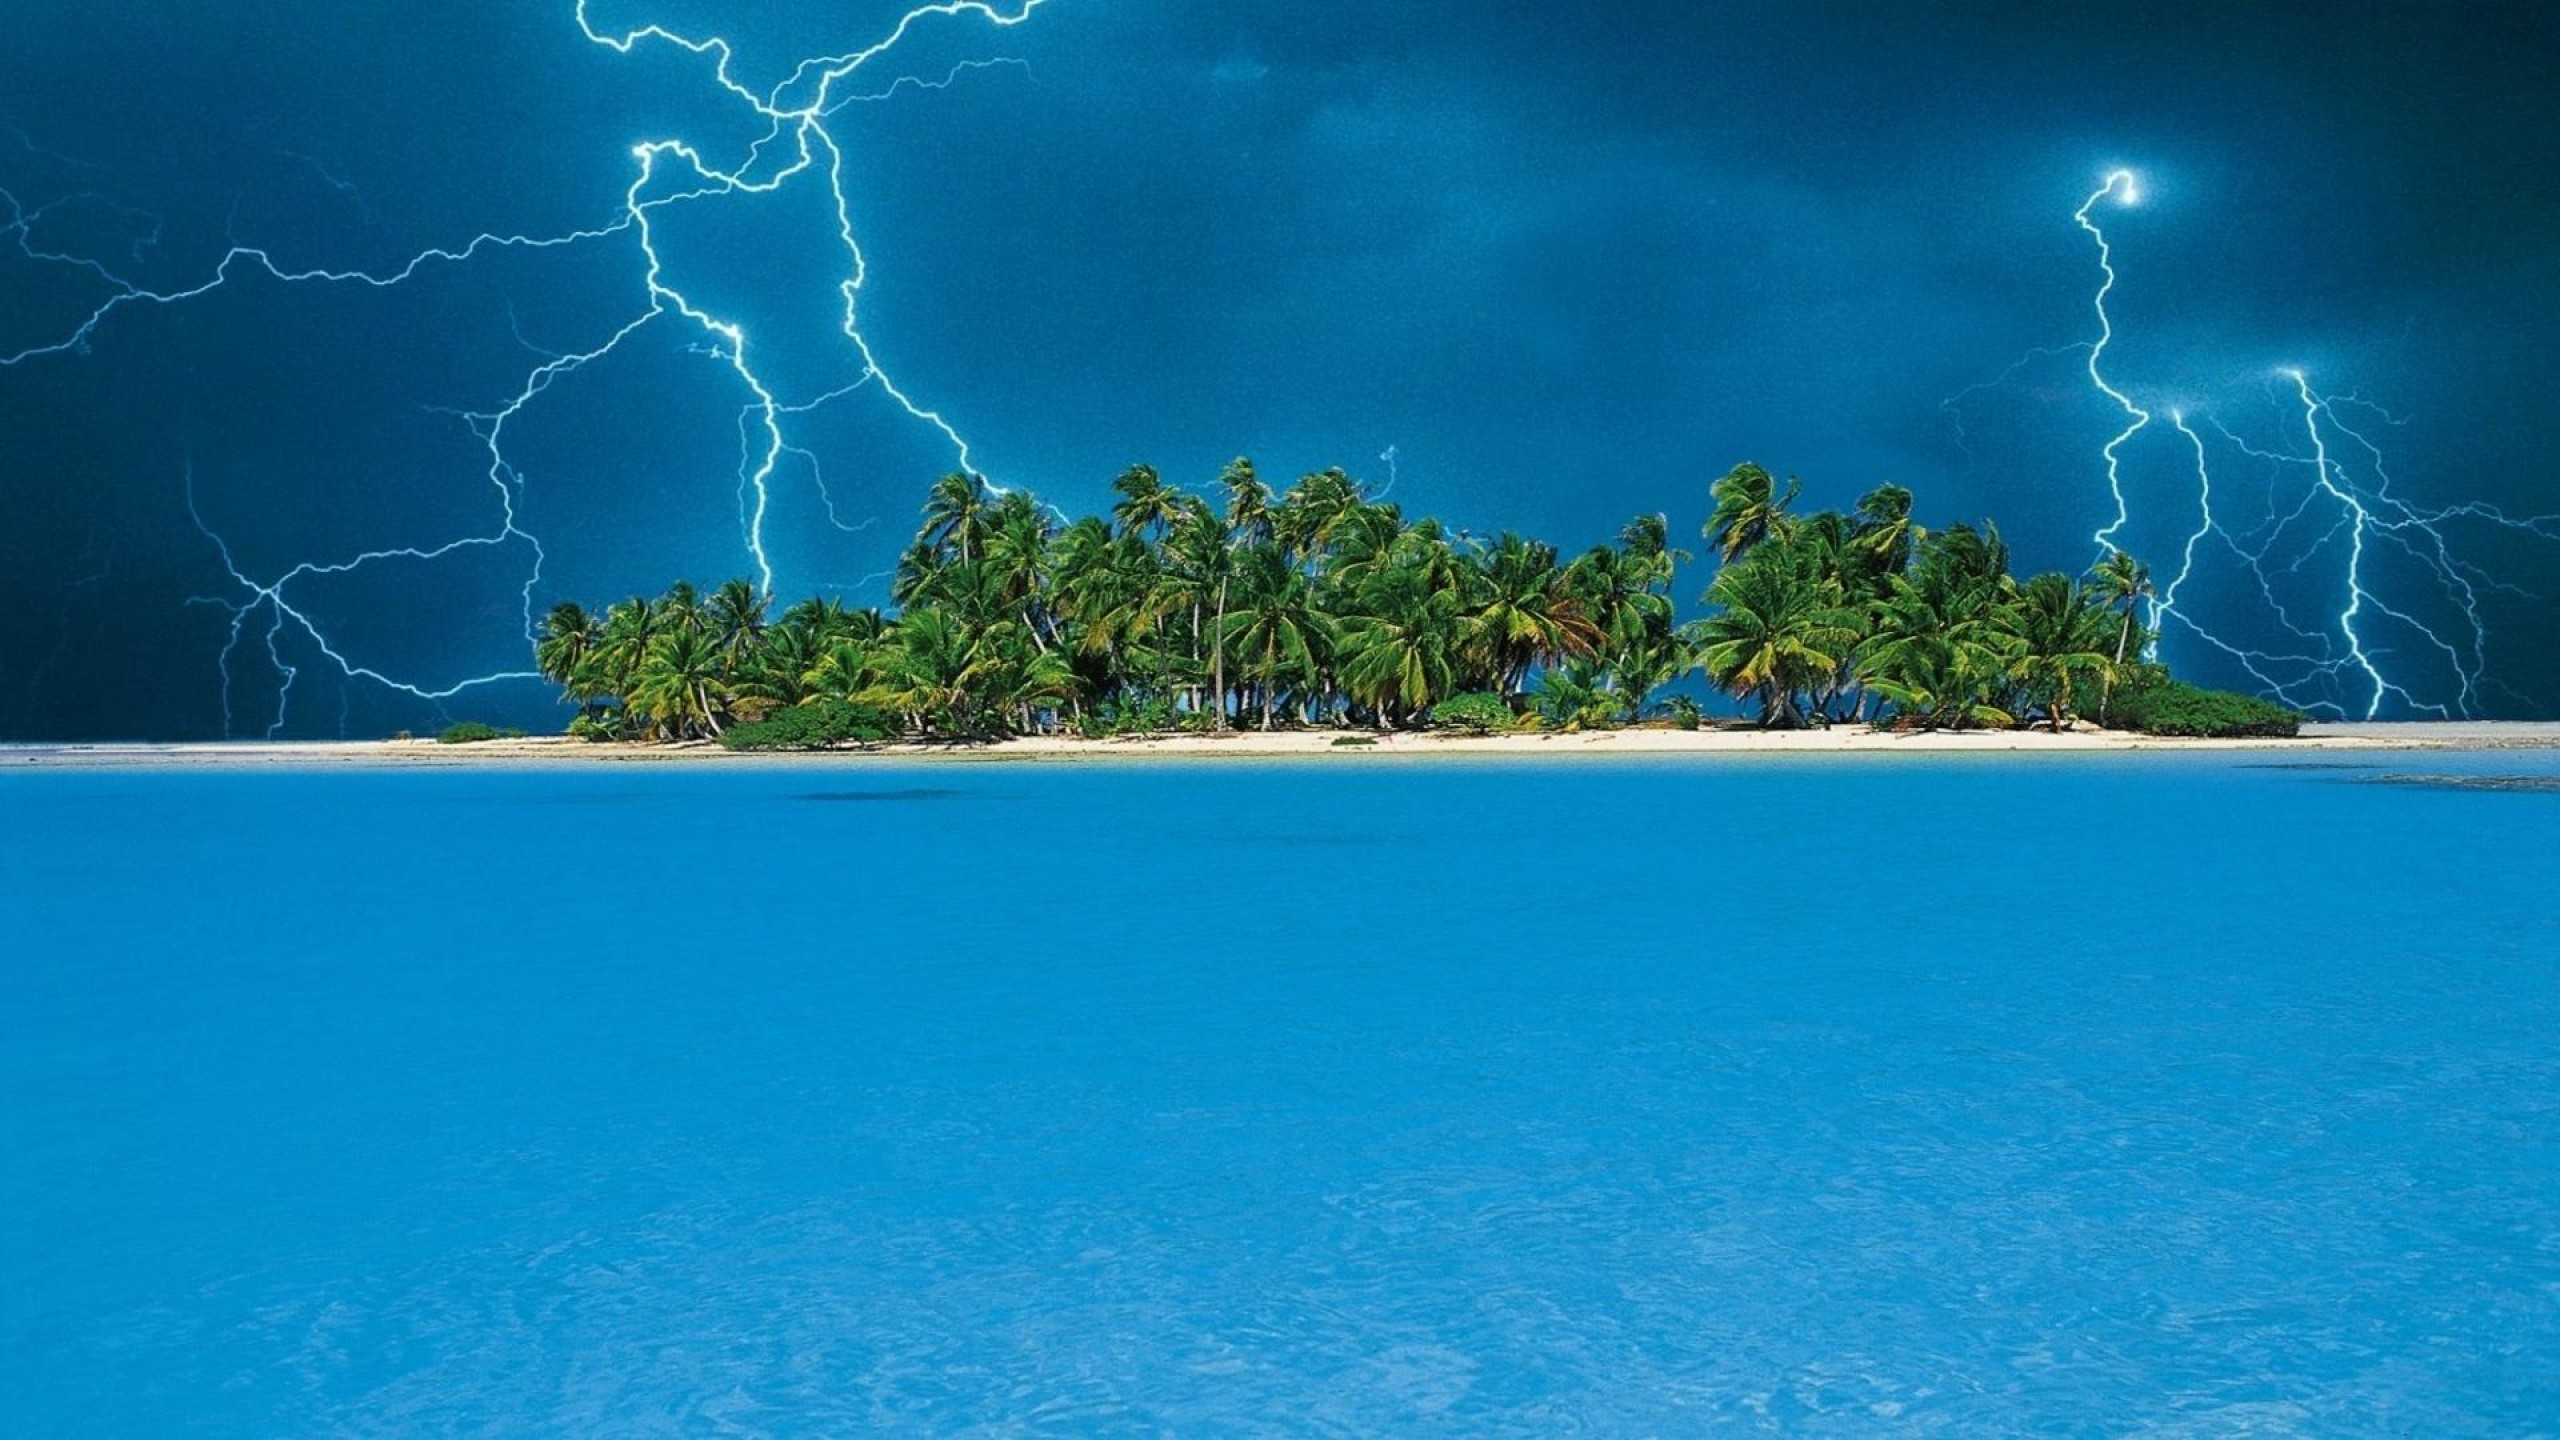 Backgrounds for Gt Tropical Island Wallpapers 2560x1440px